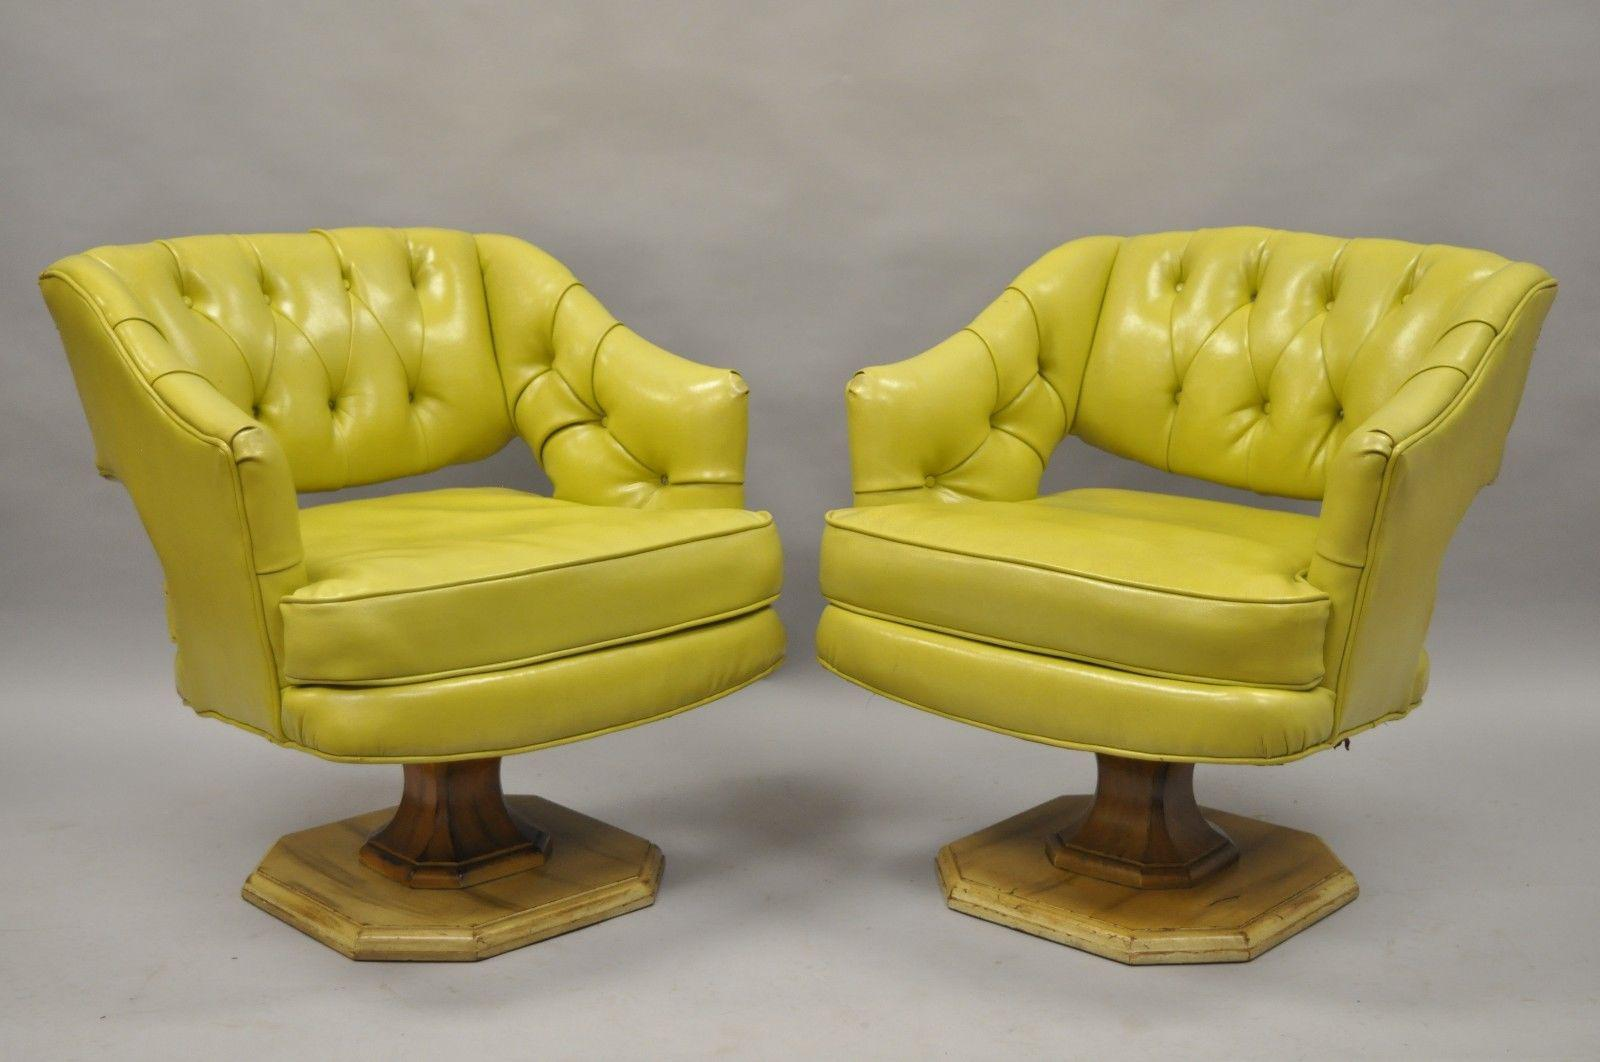 Charmant Pair Silver Craft Green Yellow Swivel Club Lounge Chairs Mid Century Modern  A For Sale